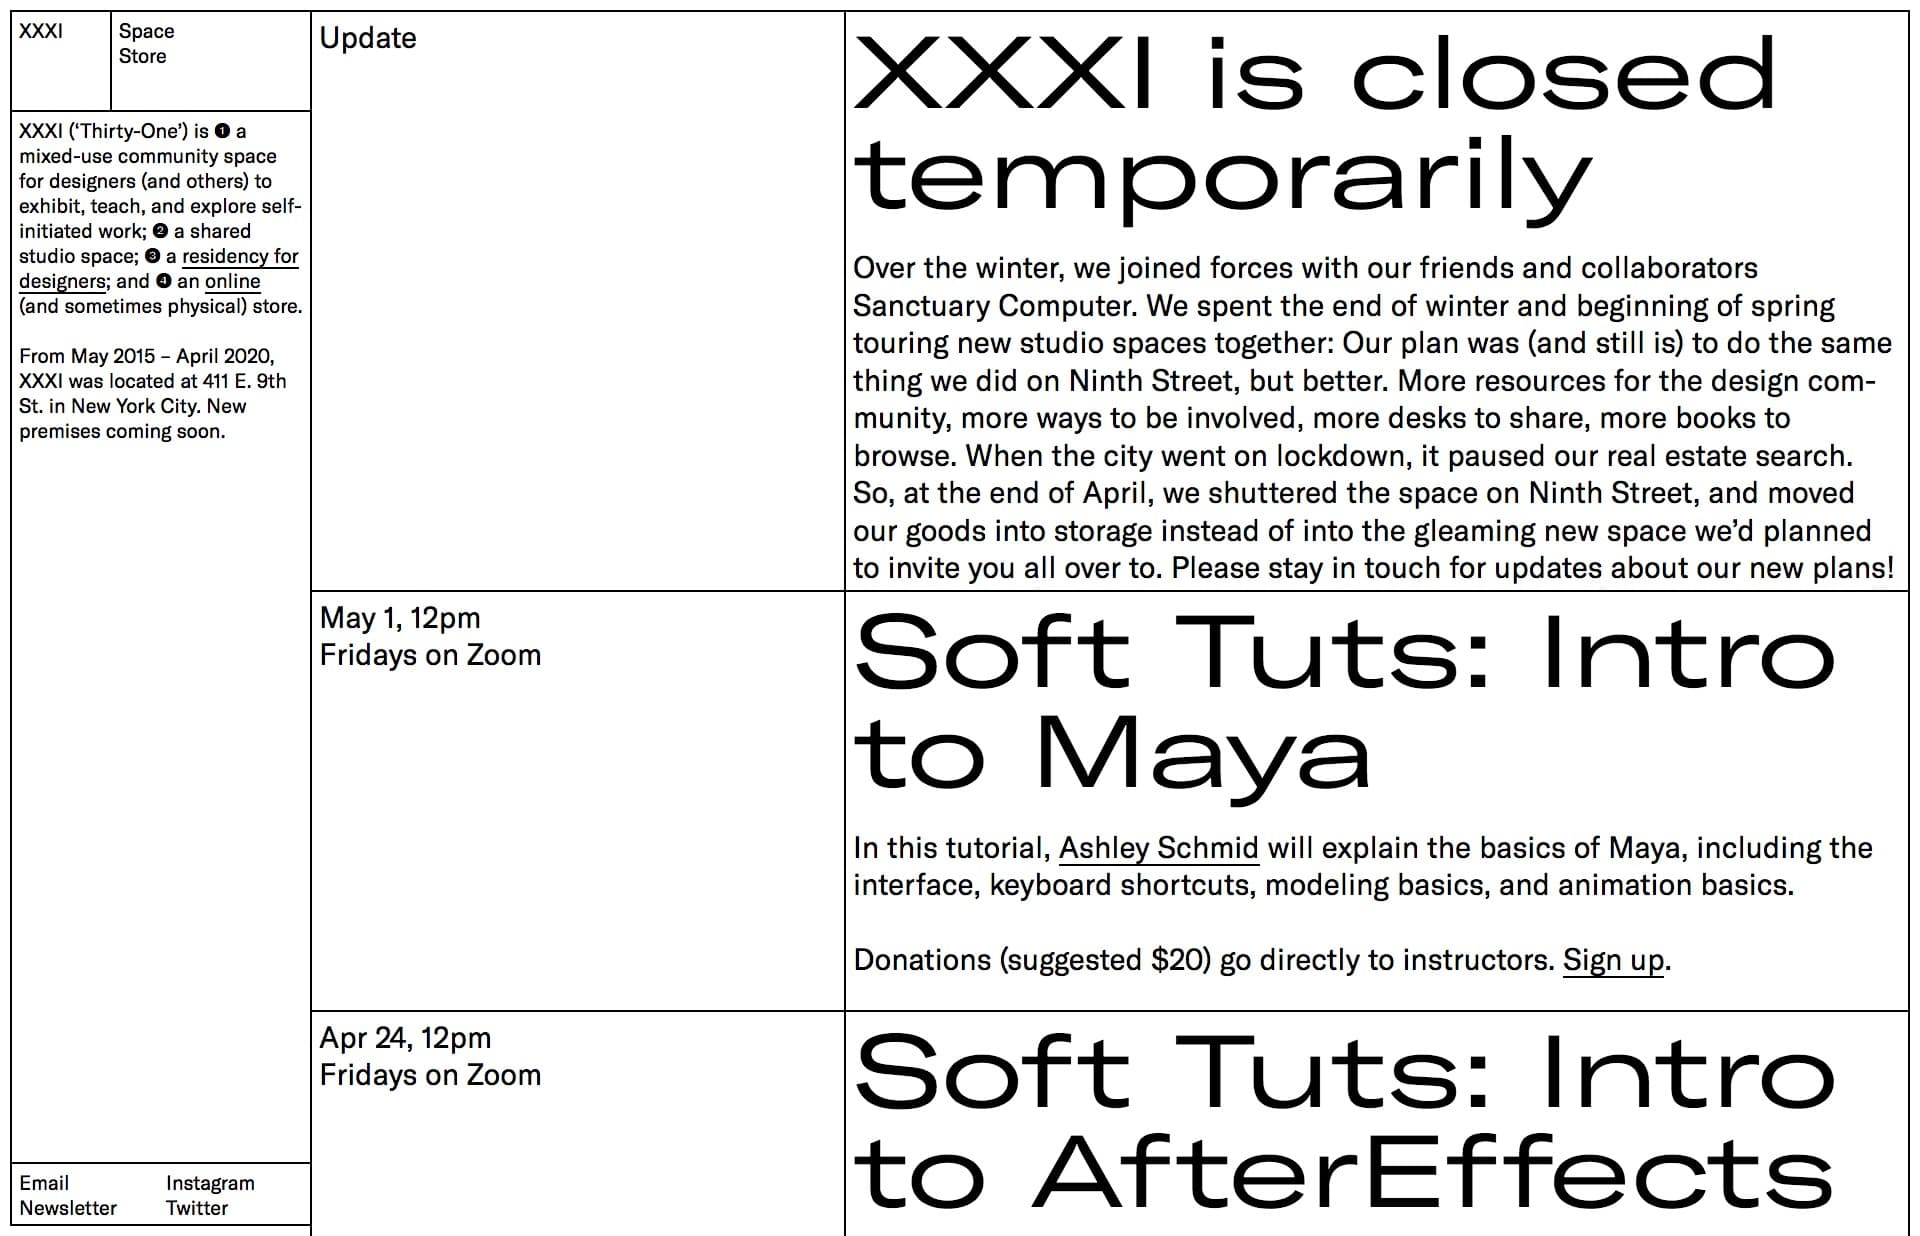 Screenshot of the website XXXI, featured on The Gallery, a curated collection of minimal websites